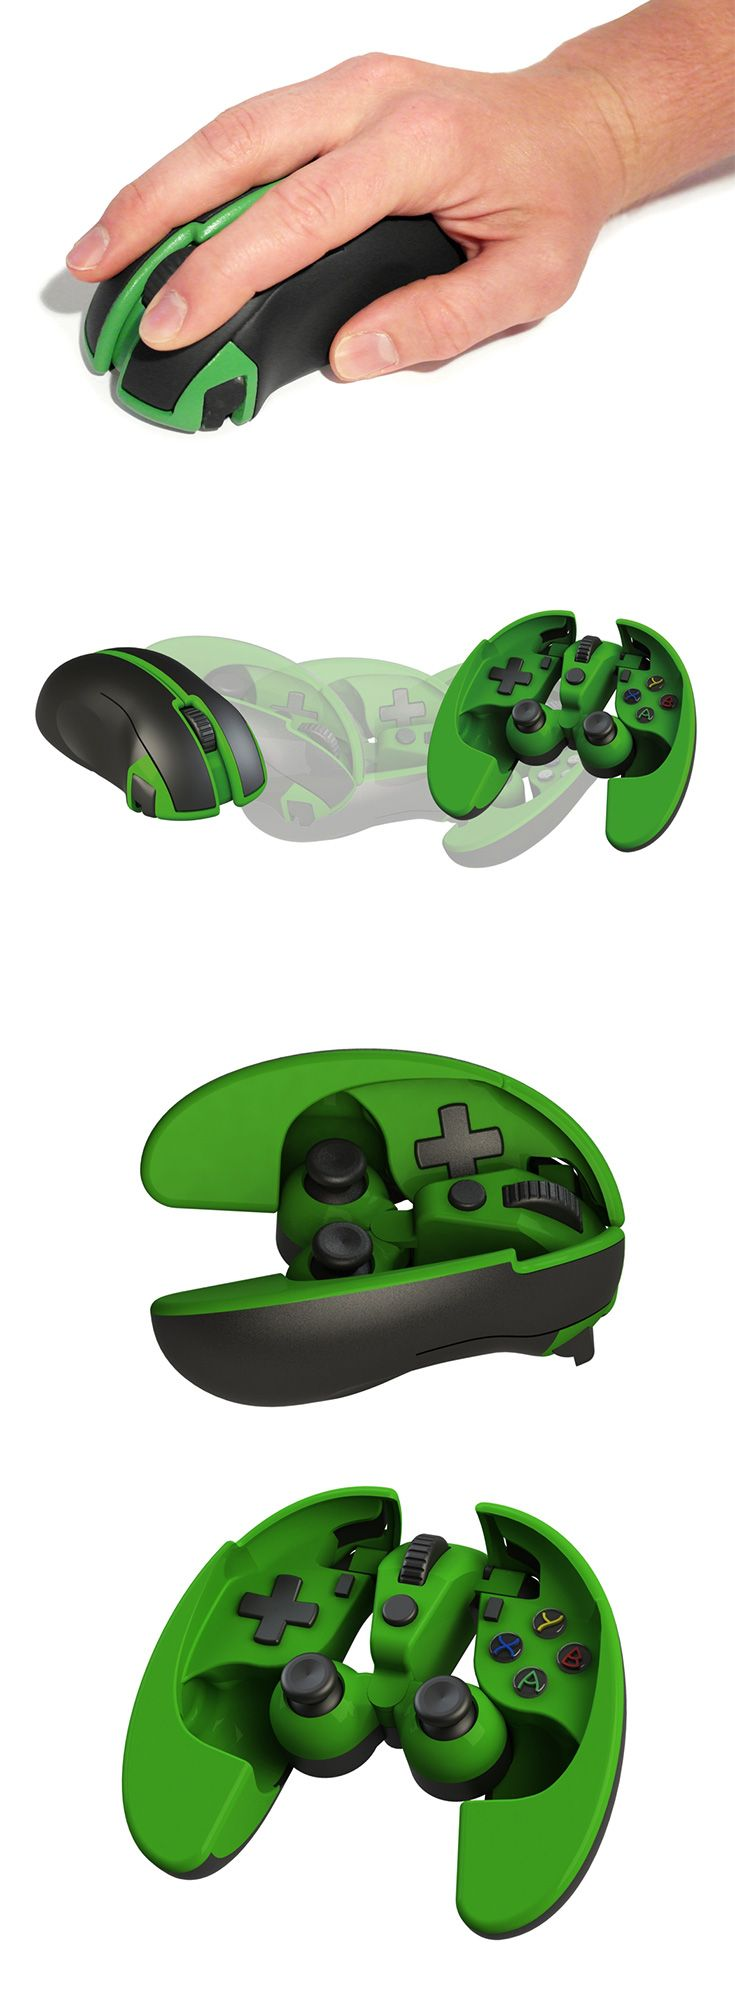 The Scarab Mouse/Gamepad is a mouse that transforms into a fully functio